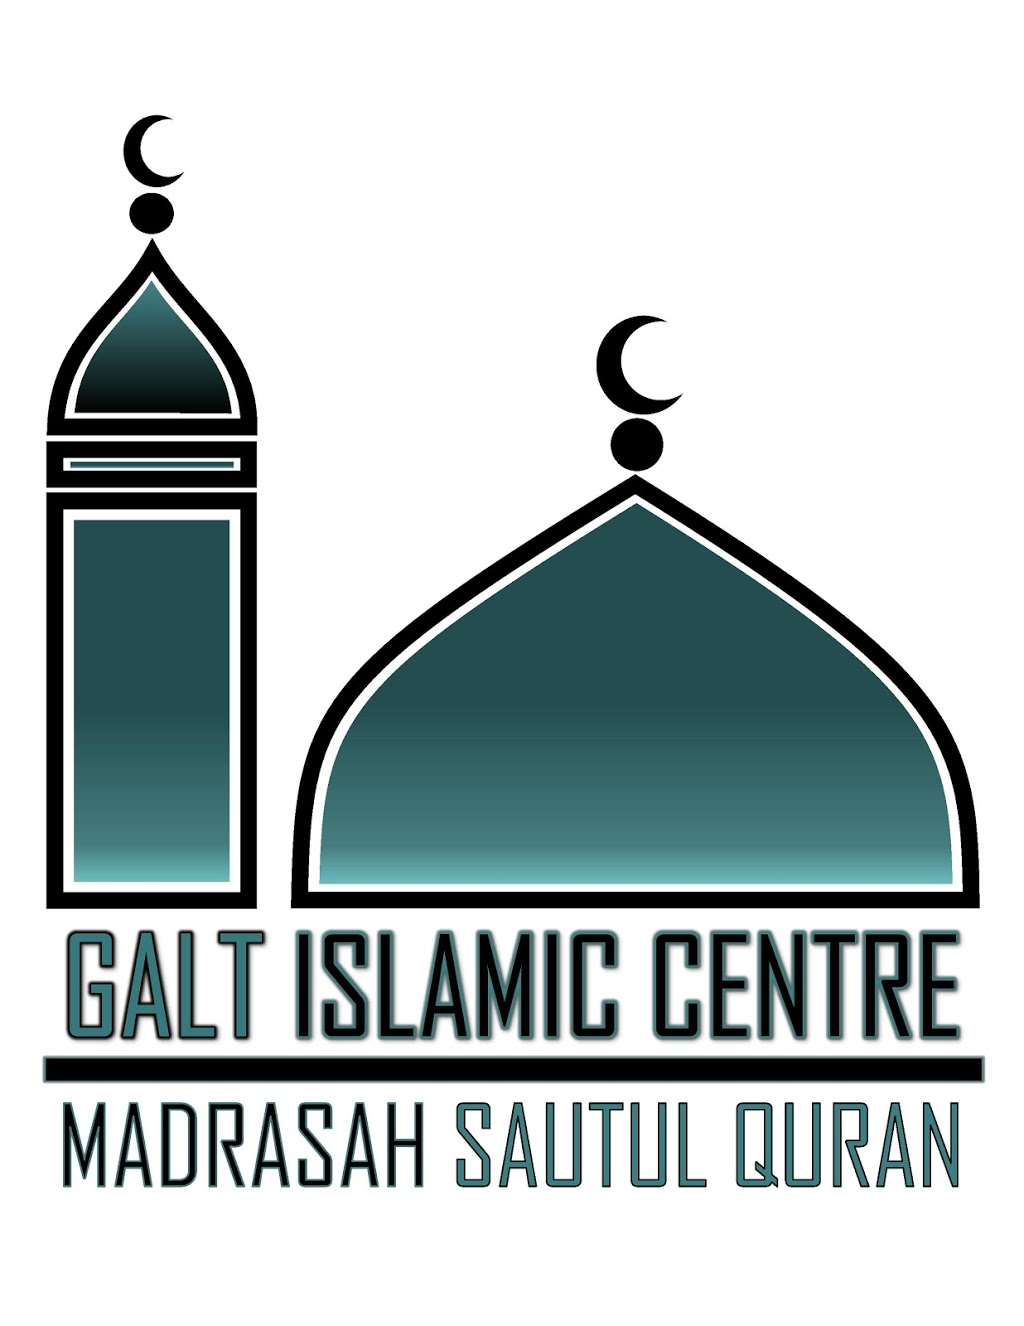 Galt Islamic Centre | point of interest | 82 Beverly St, Cambridge, ON N1R 3Z7, Canada | 5192129736 OR +1 519-212-9736